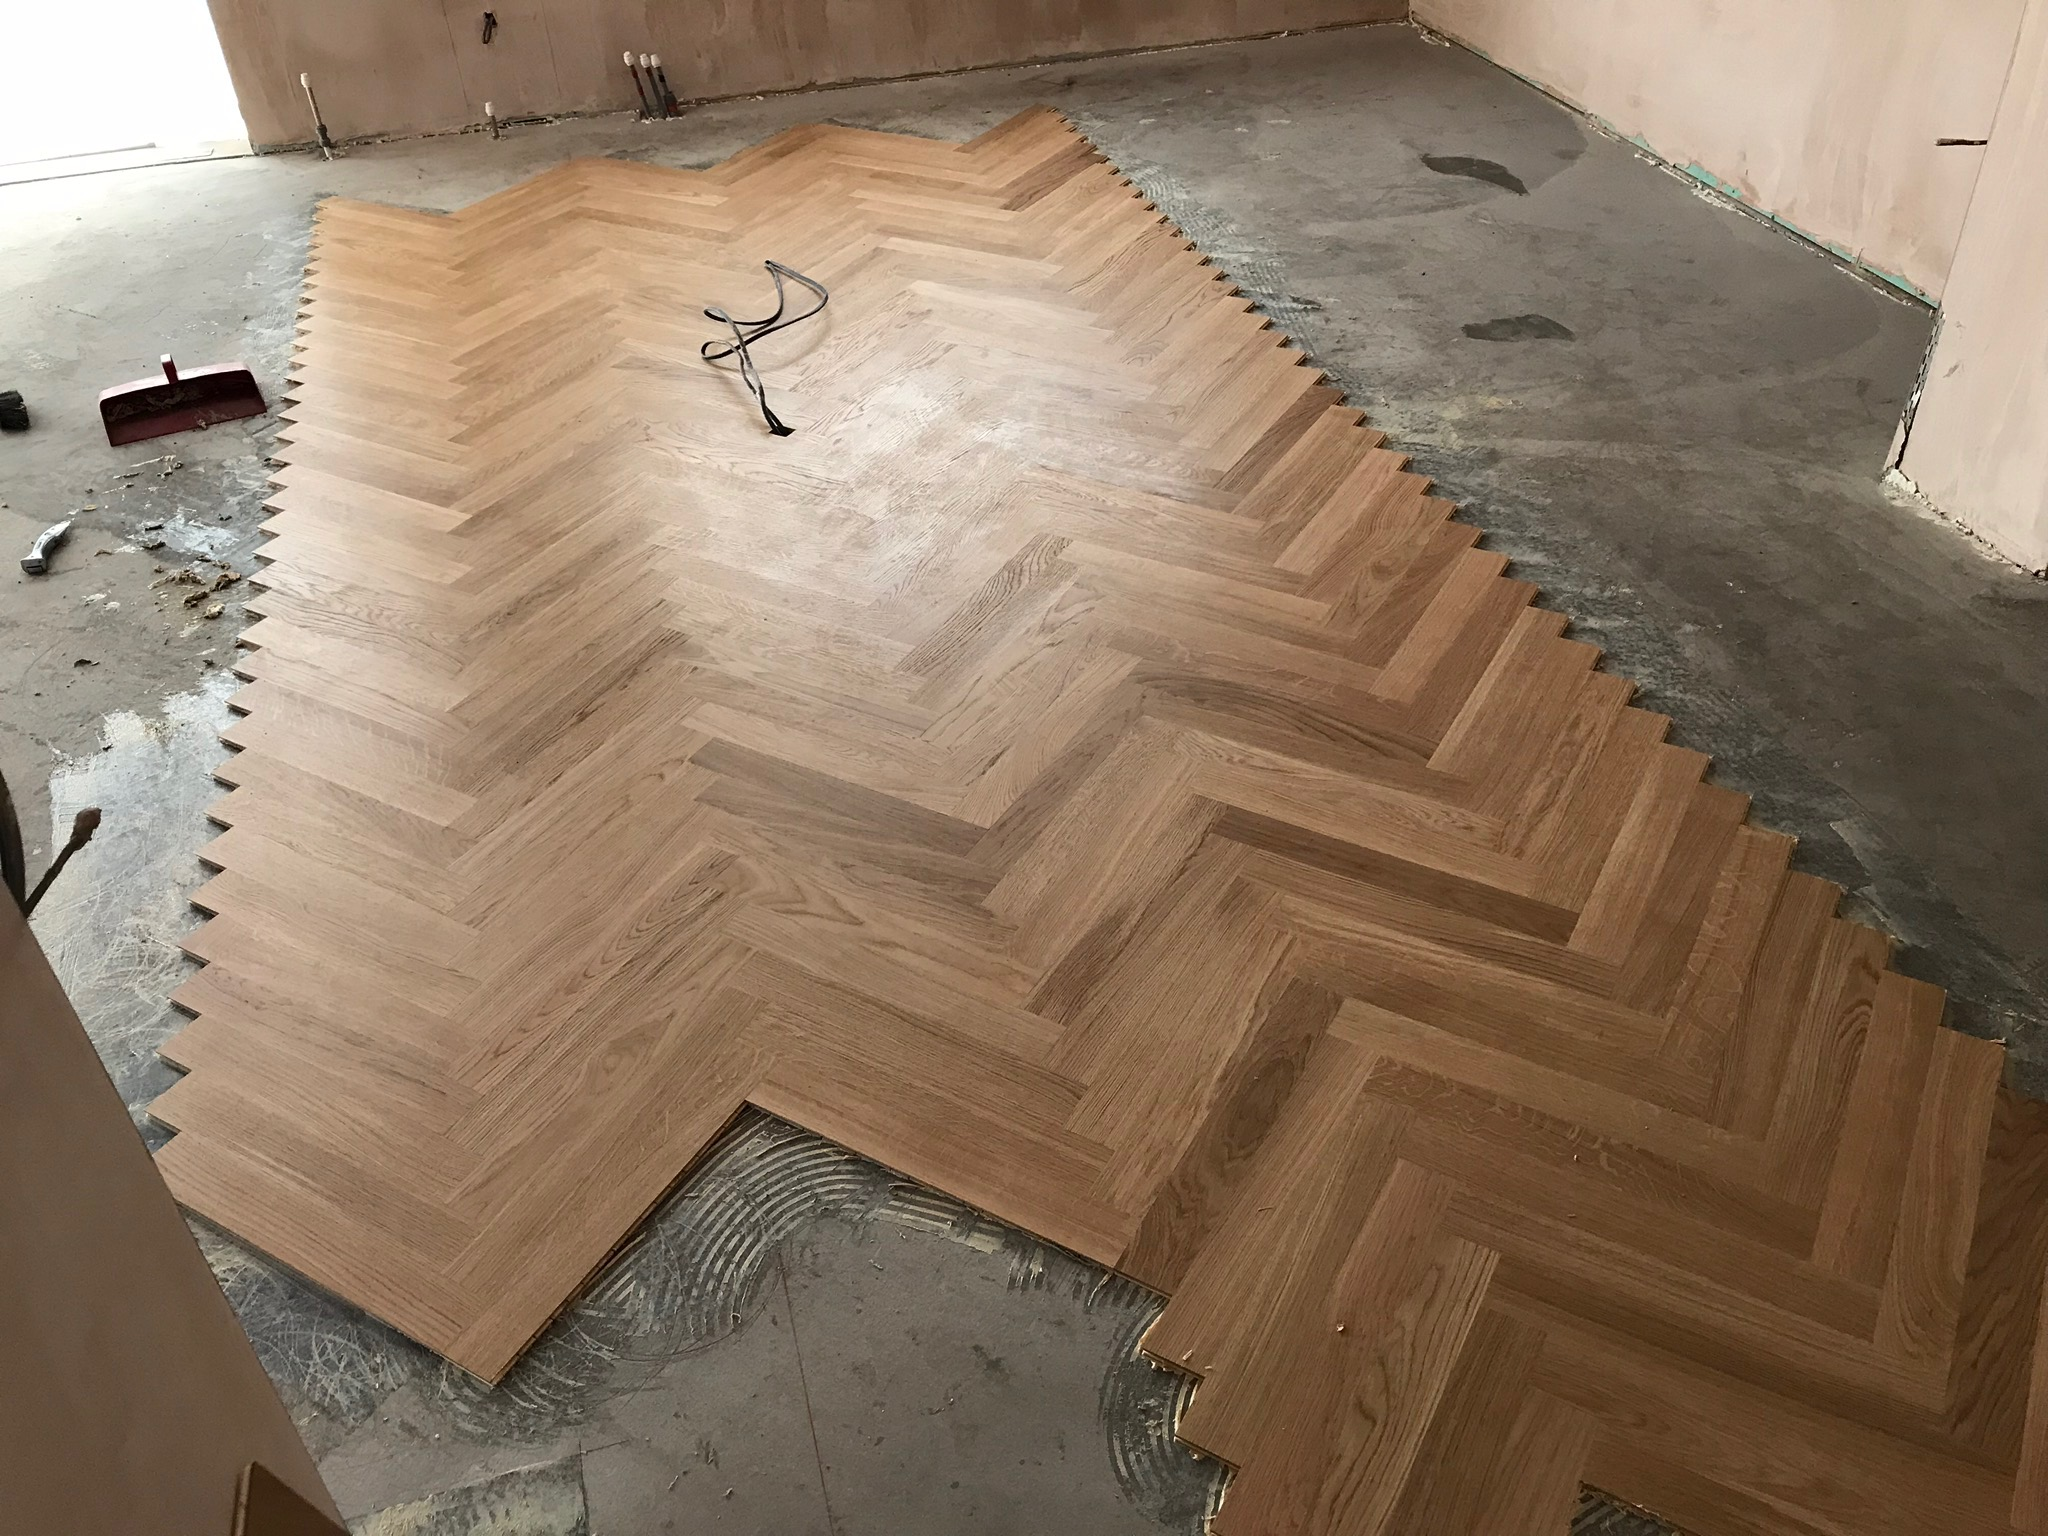 Floor goes down: Oak veneer herringbone parquet.